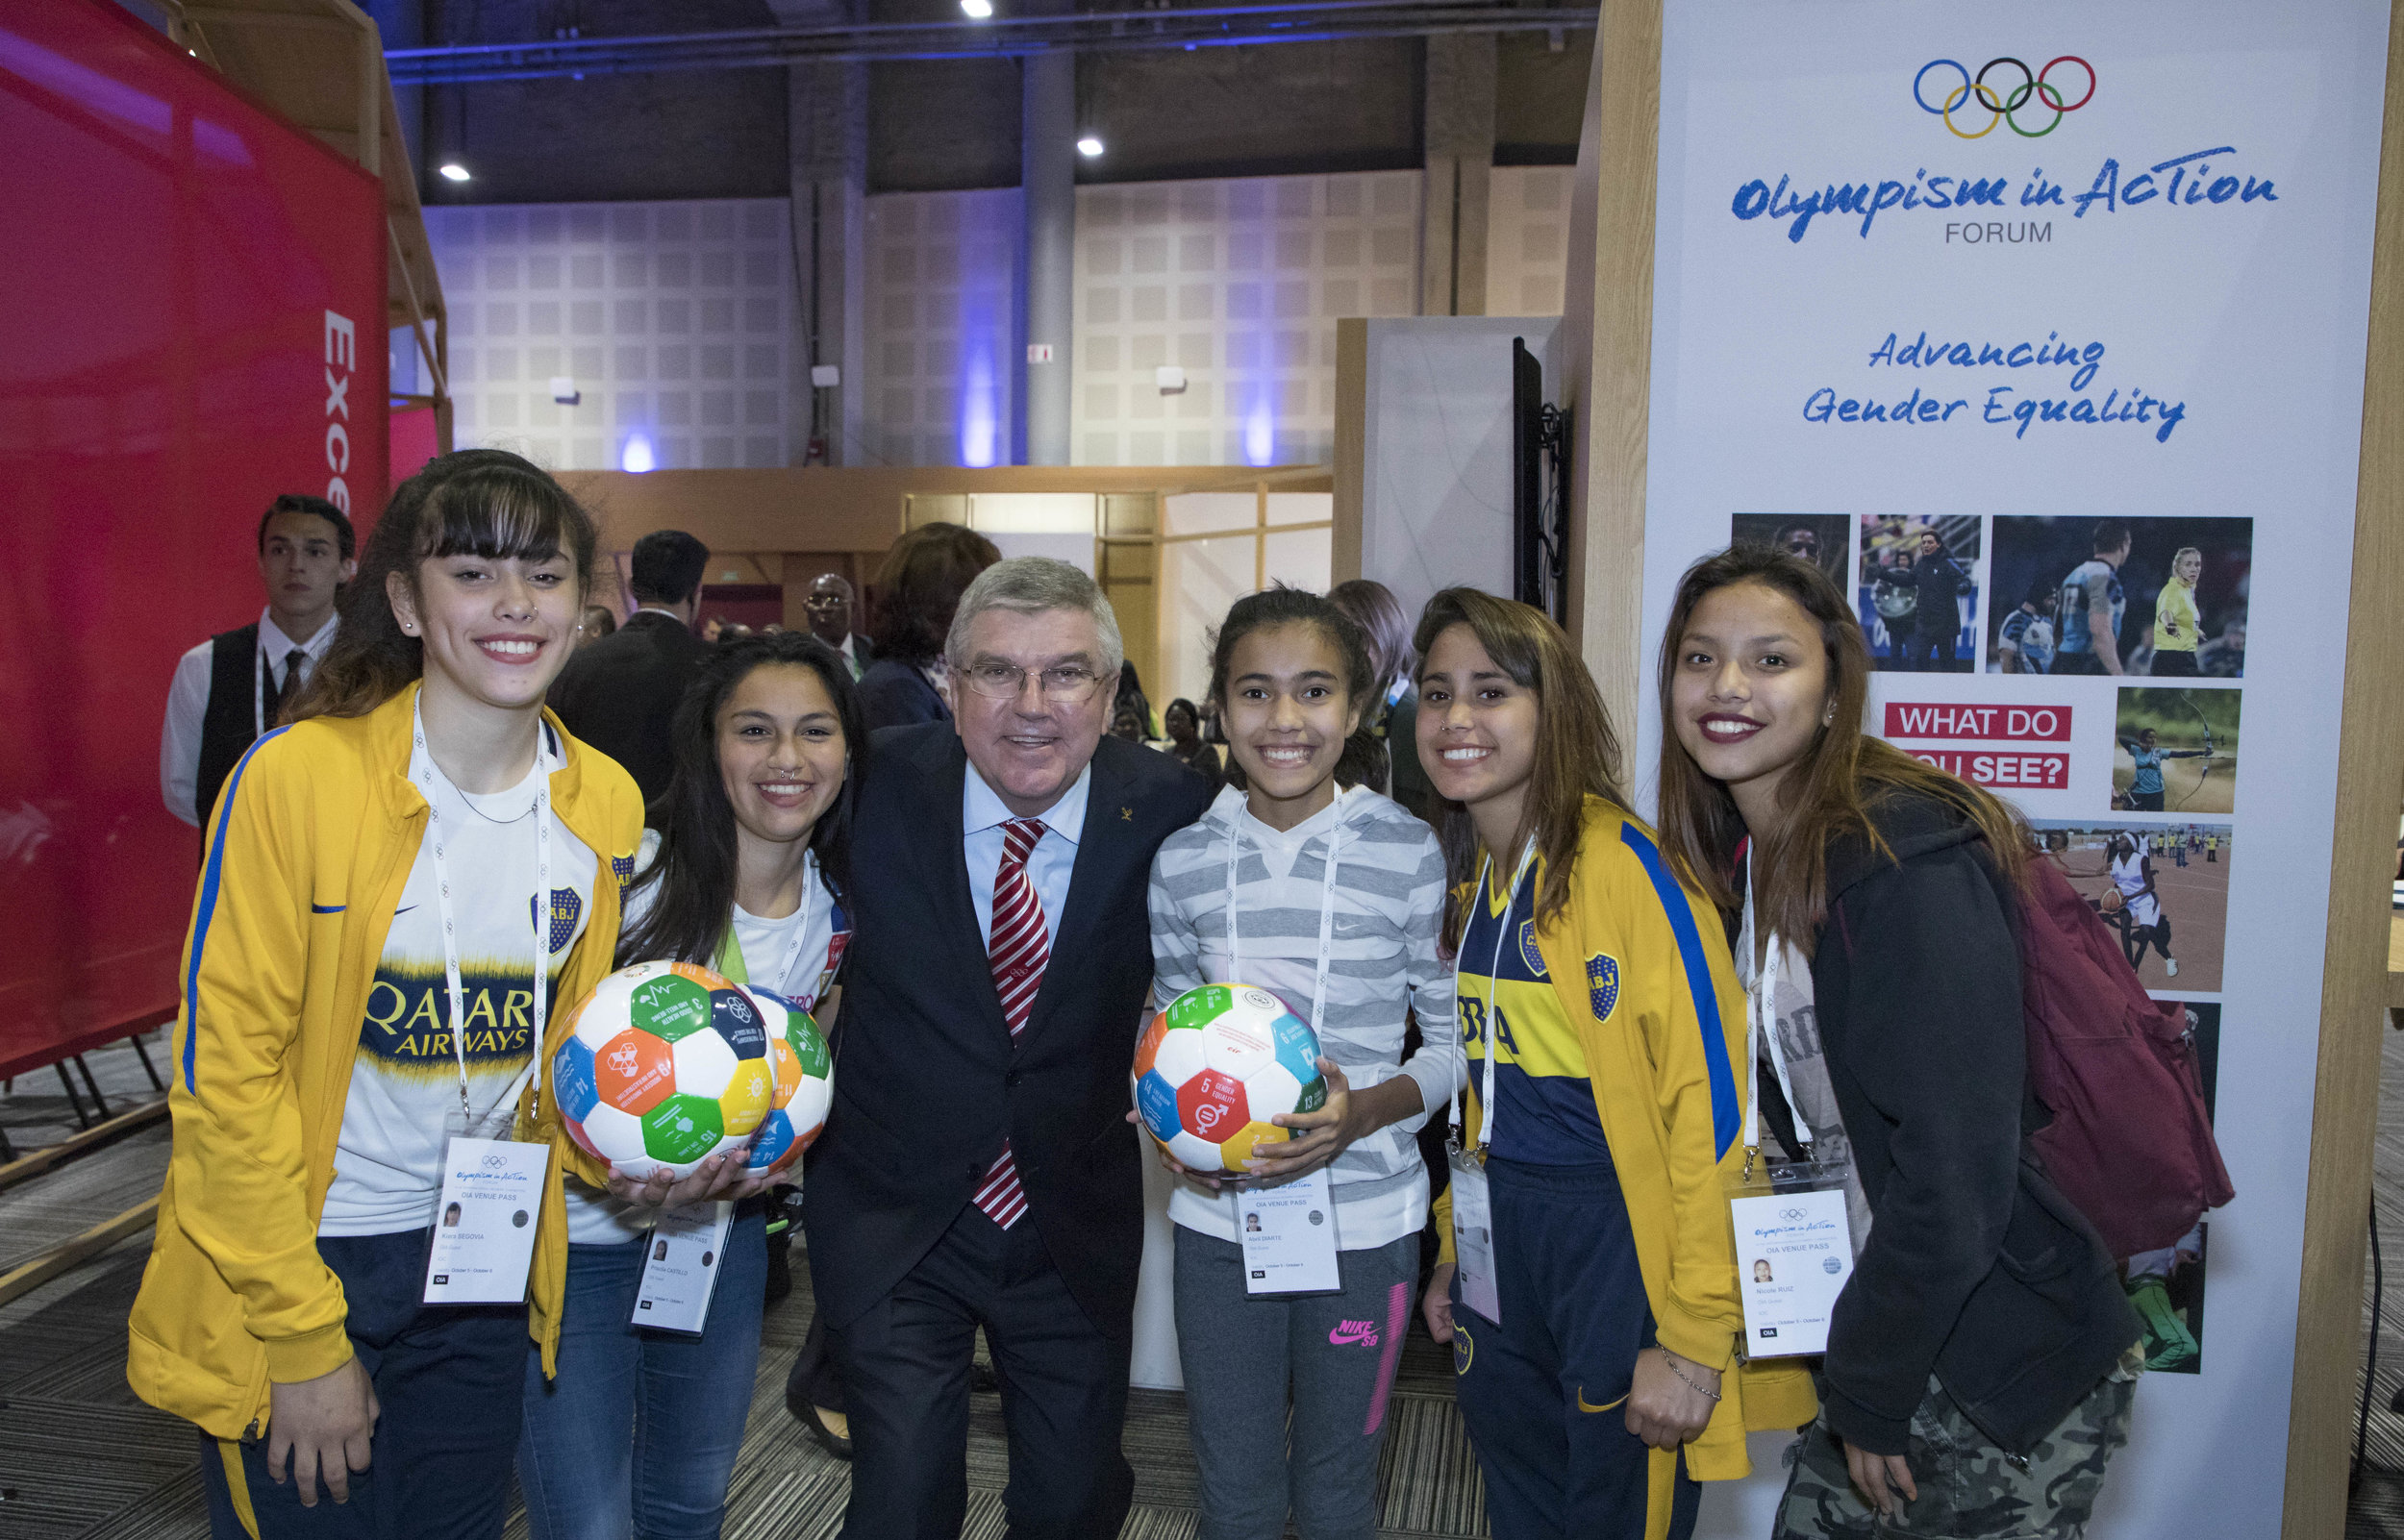 Presenting at the Youth Olympics  on October 5th. We was invited to present this idea together with some of the participating teams in connection with the Youth Olympics in Buenos Aires. Here players together with IOC president Thomas Bach.